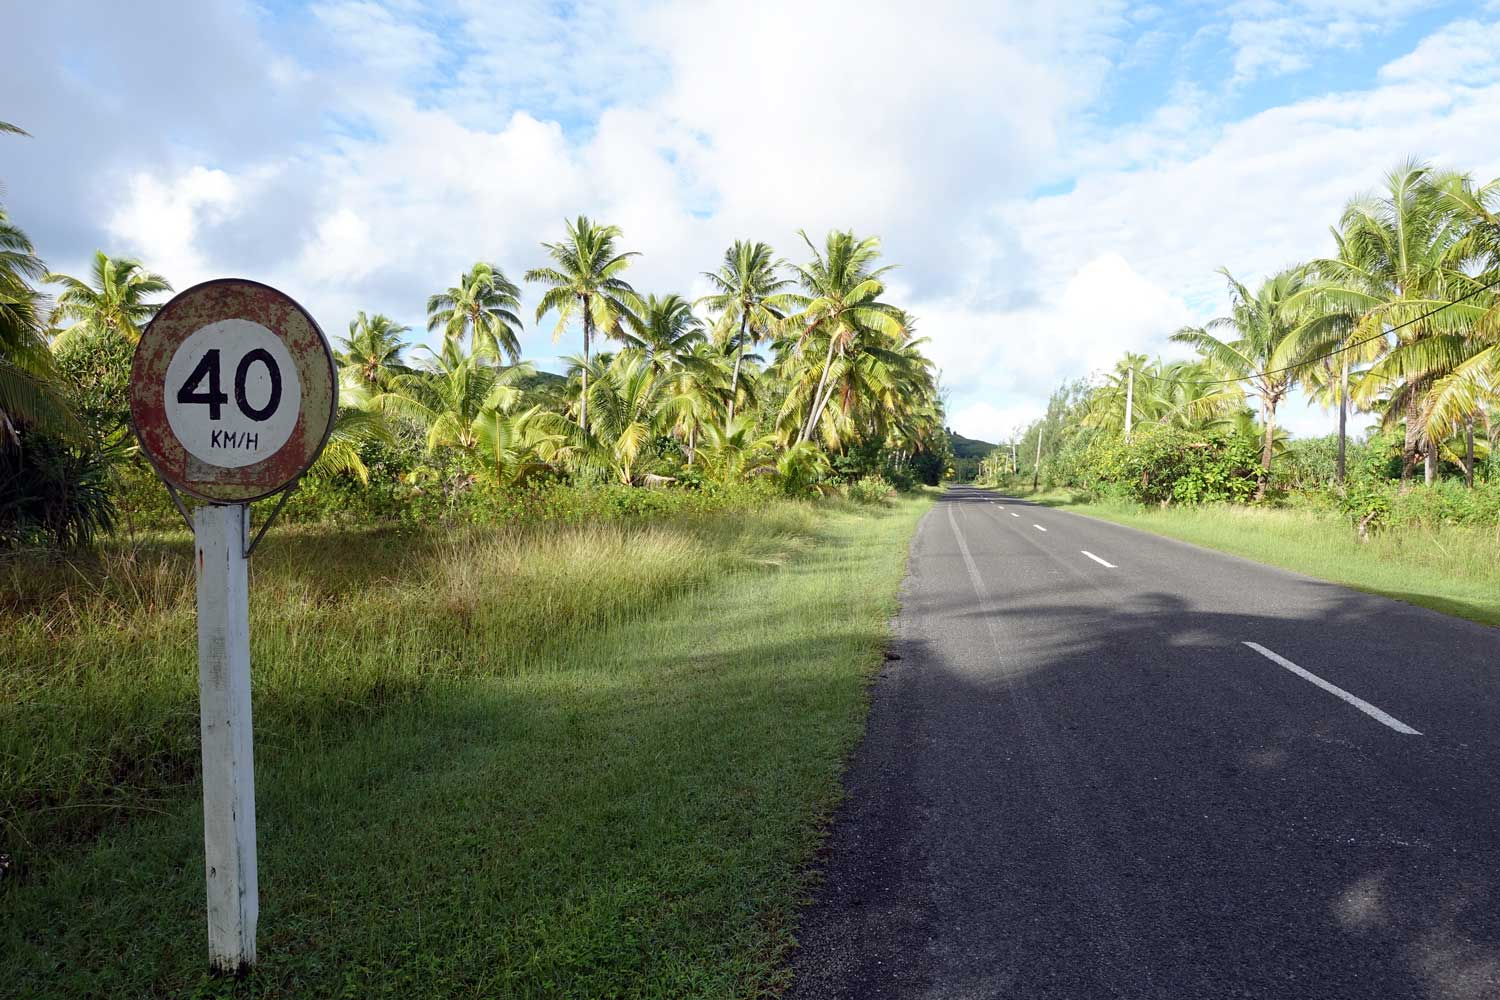 Aitutaki culture speed limit